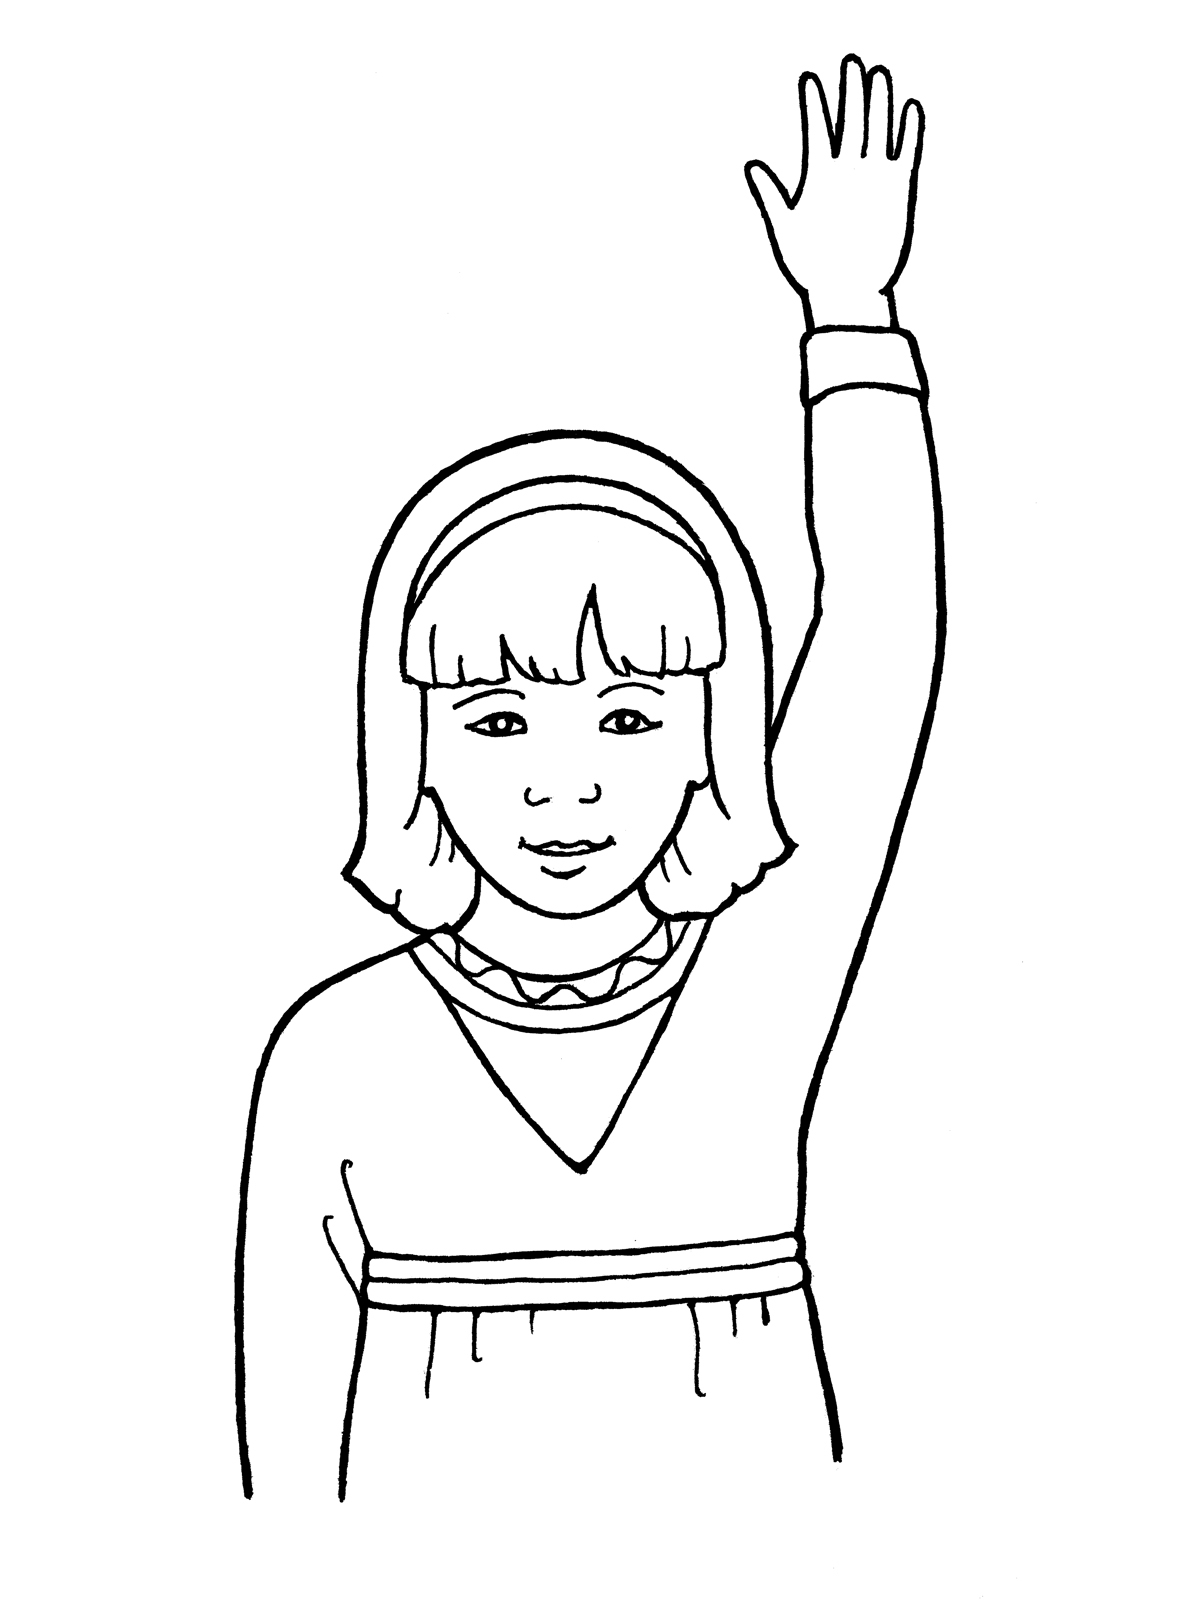 Reverence and Respect: Young Girl with Raised Hand